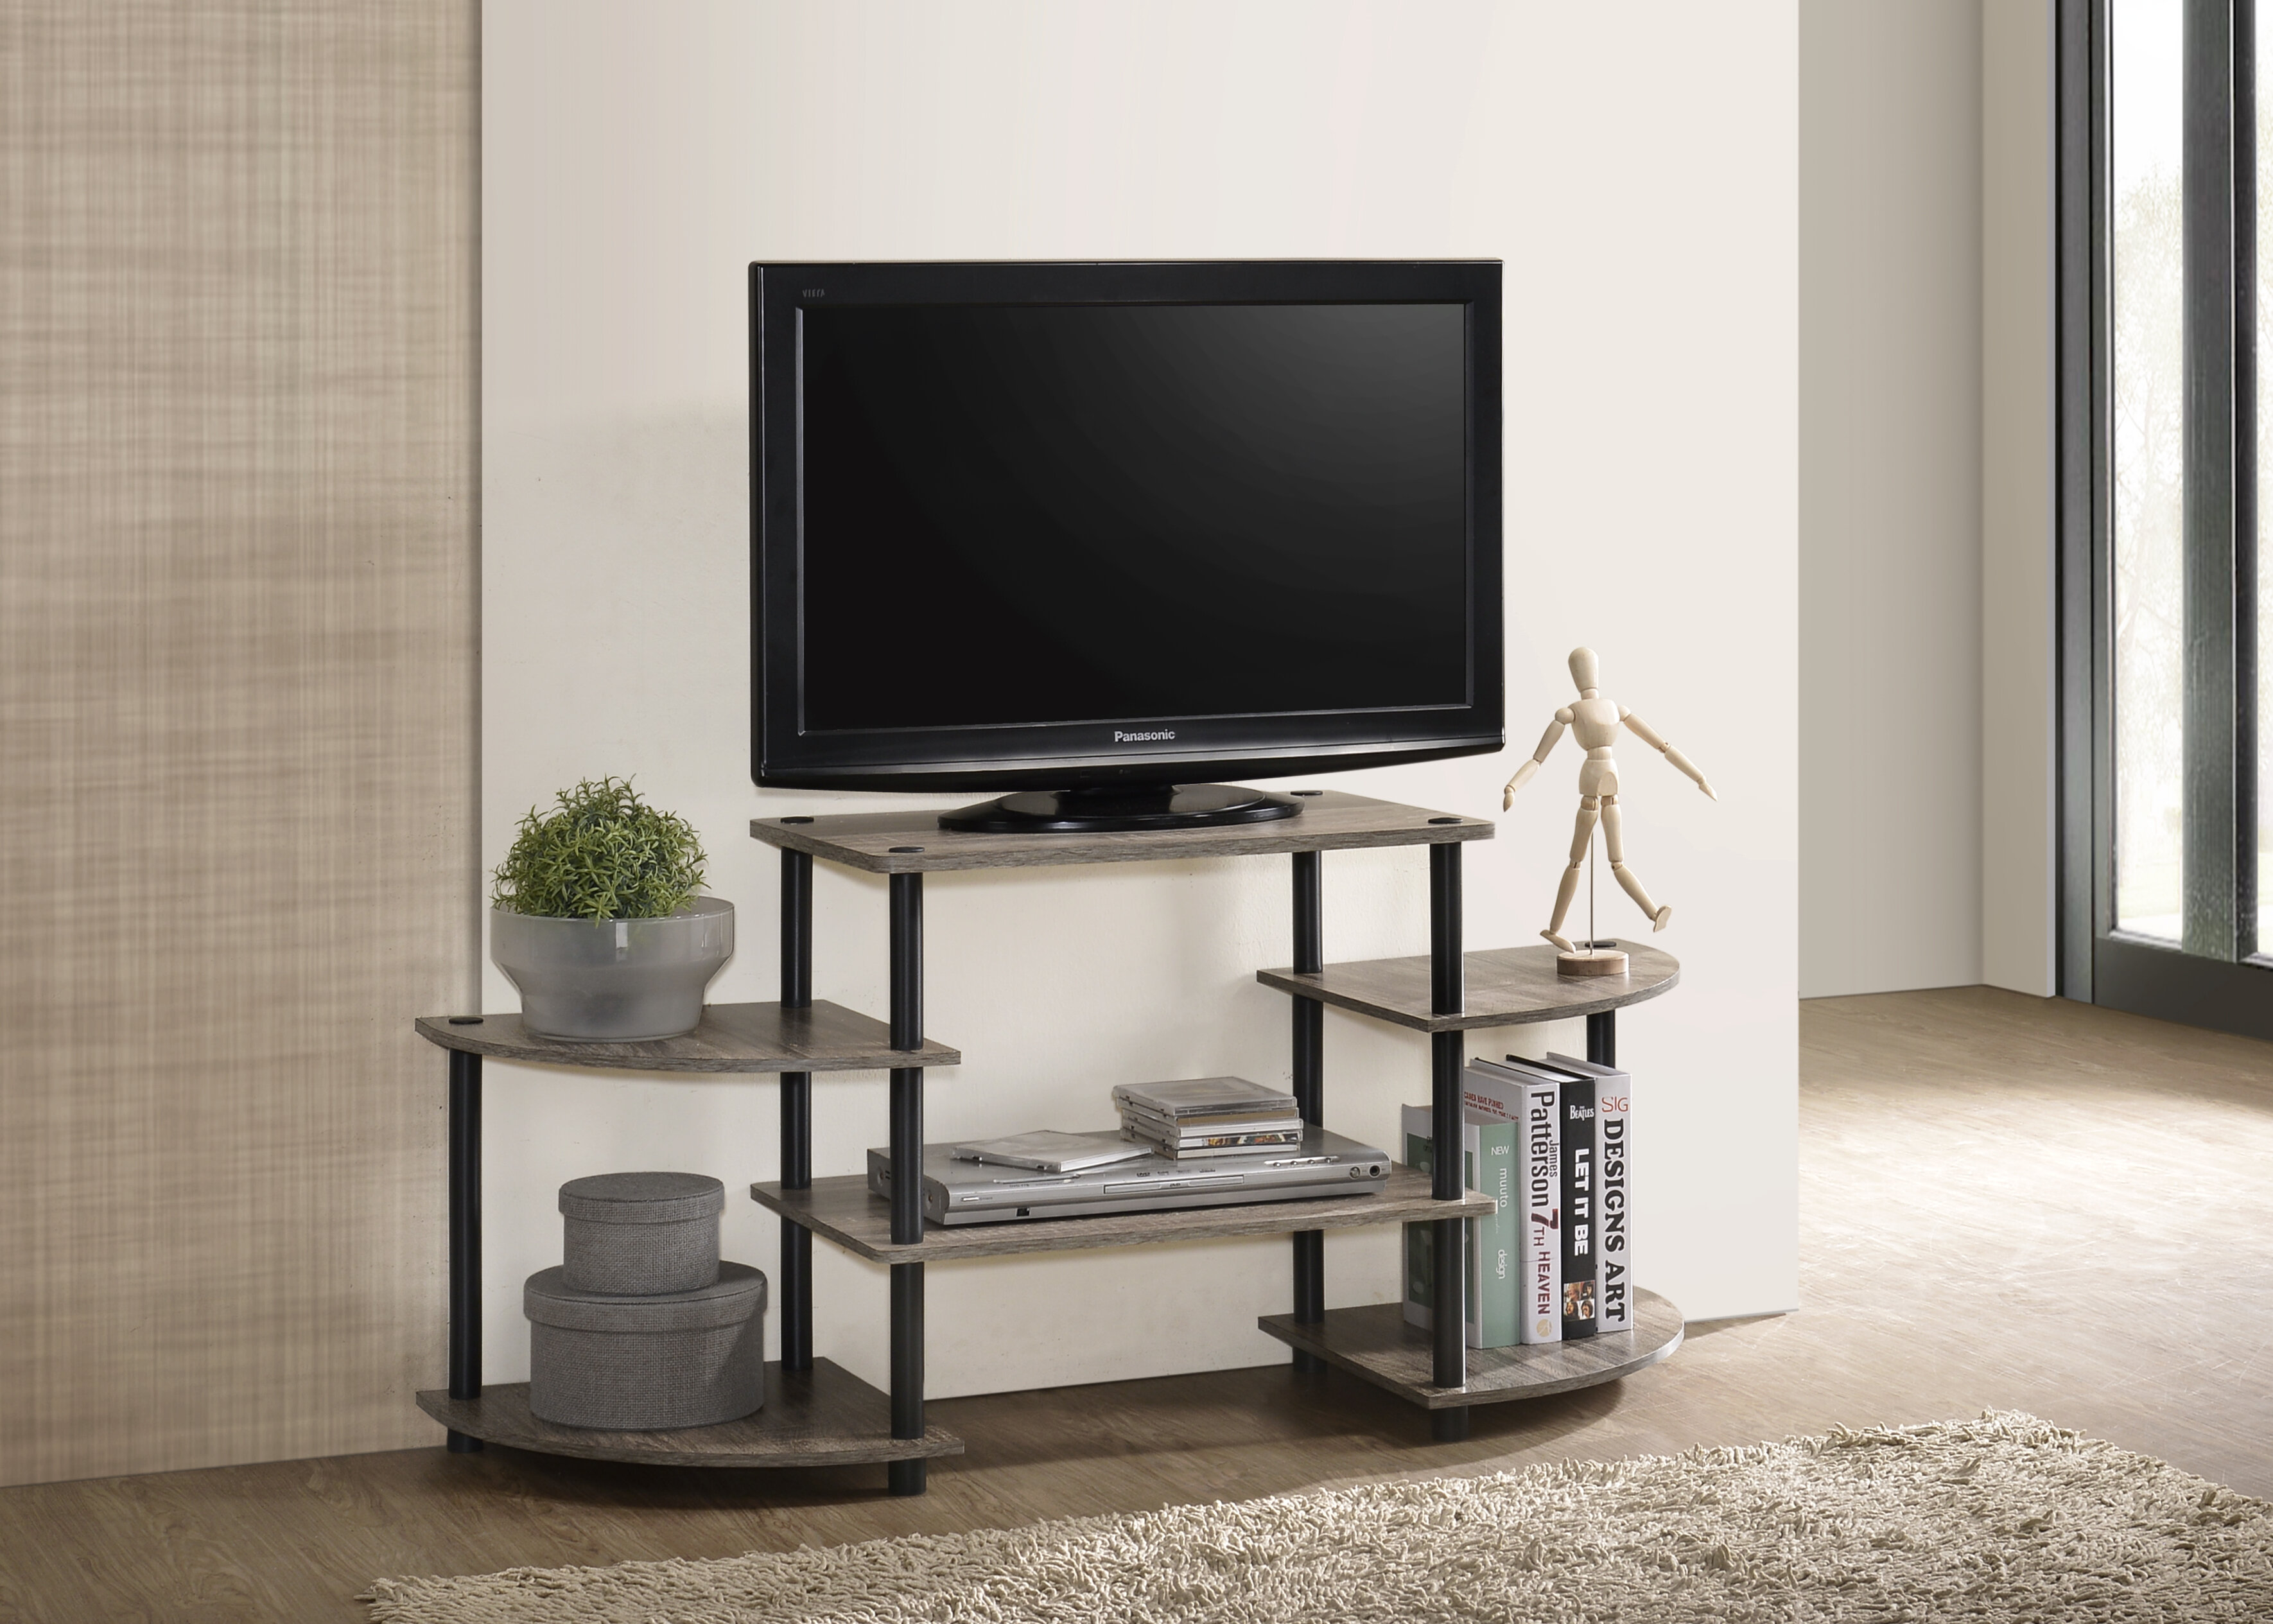 Williston Forge Louque TV Stand for TVs up to 32 inches & Reviews